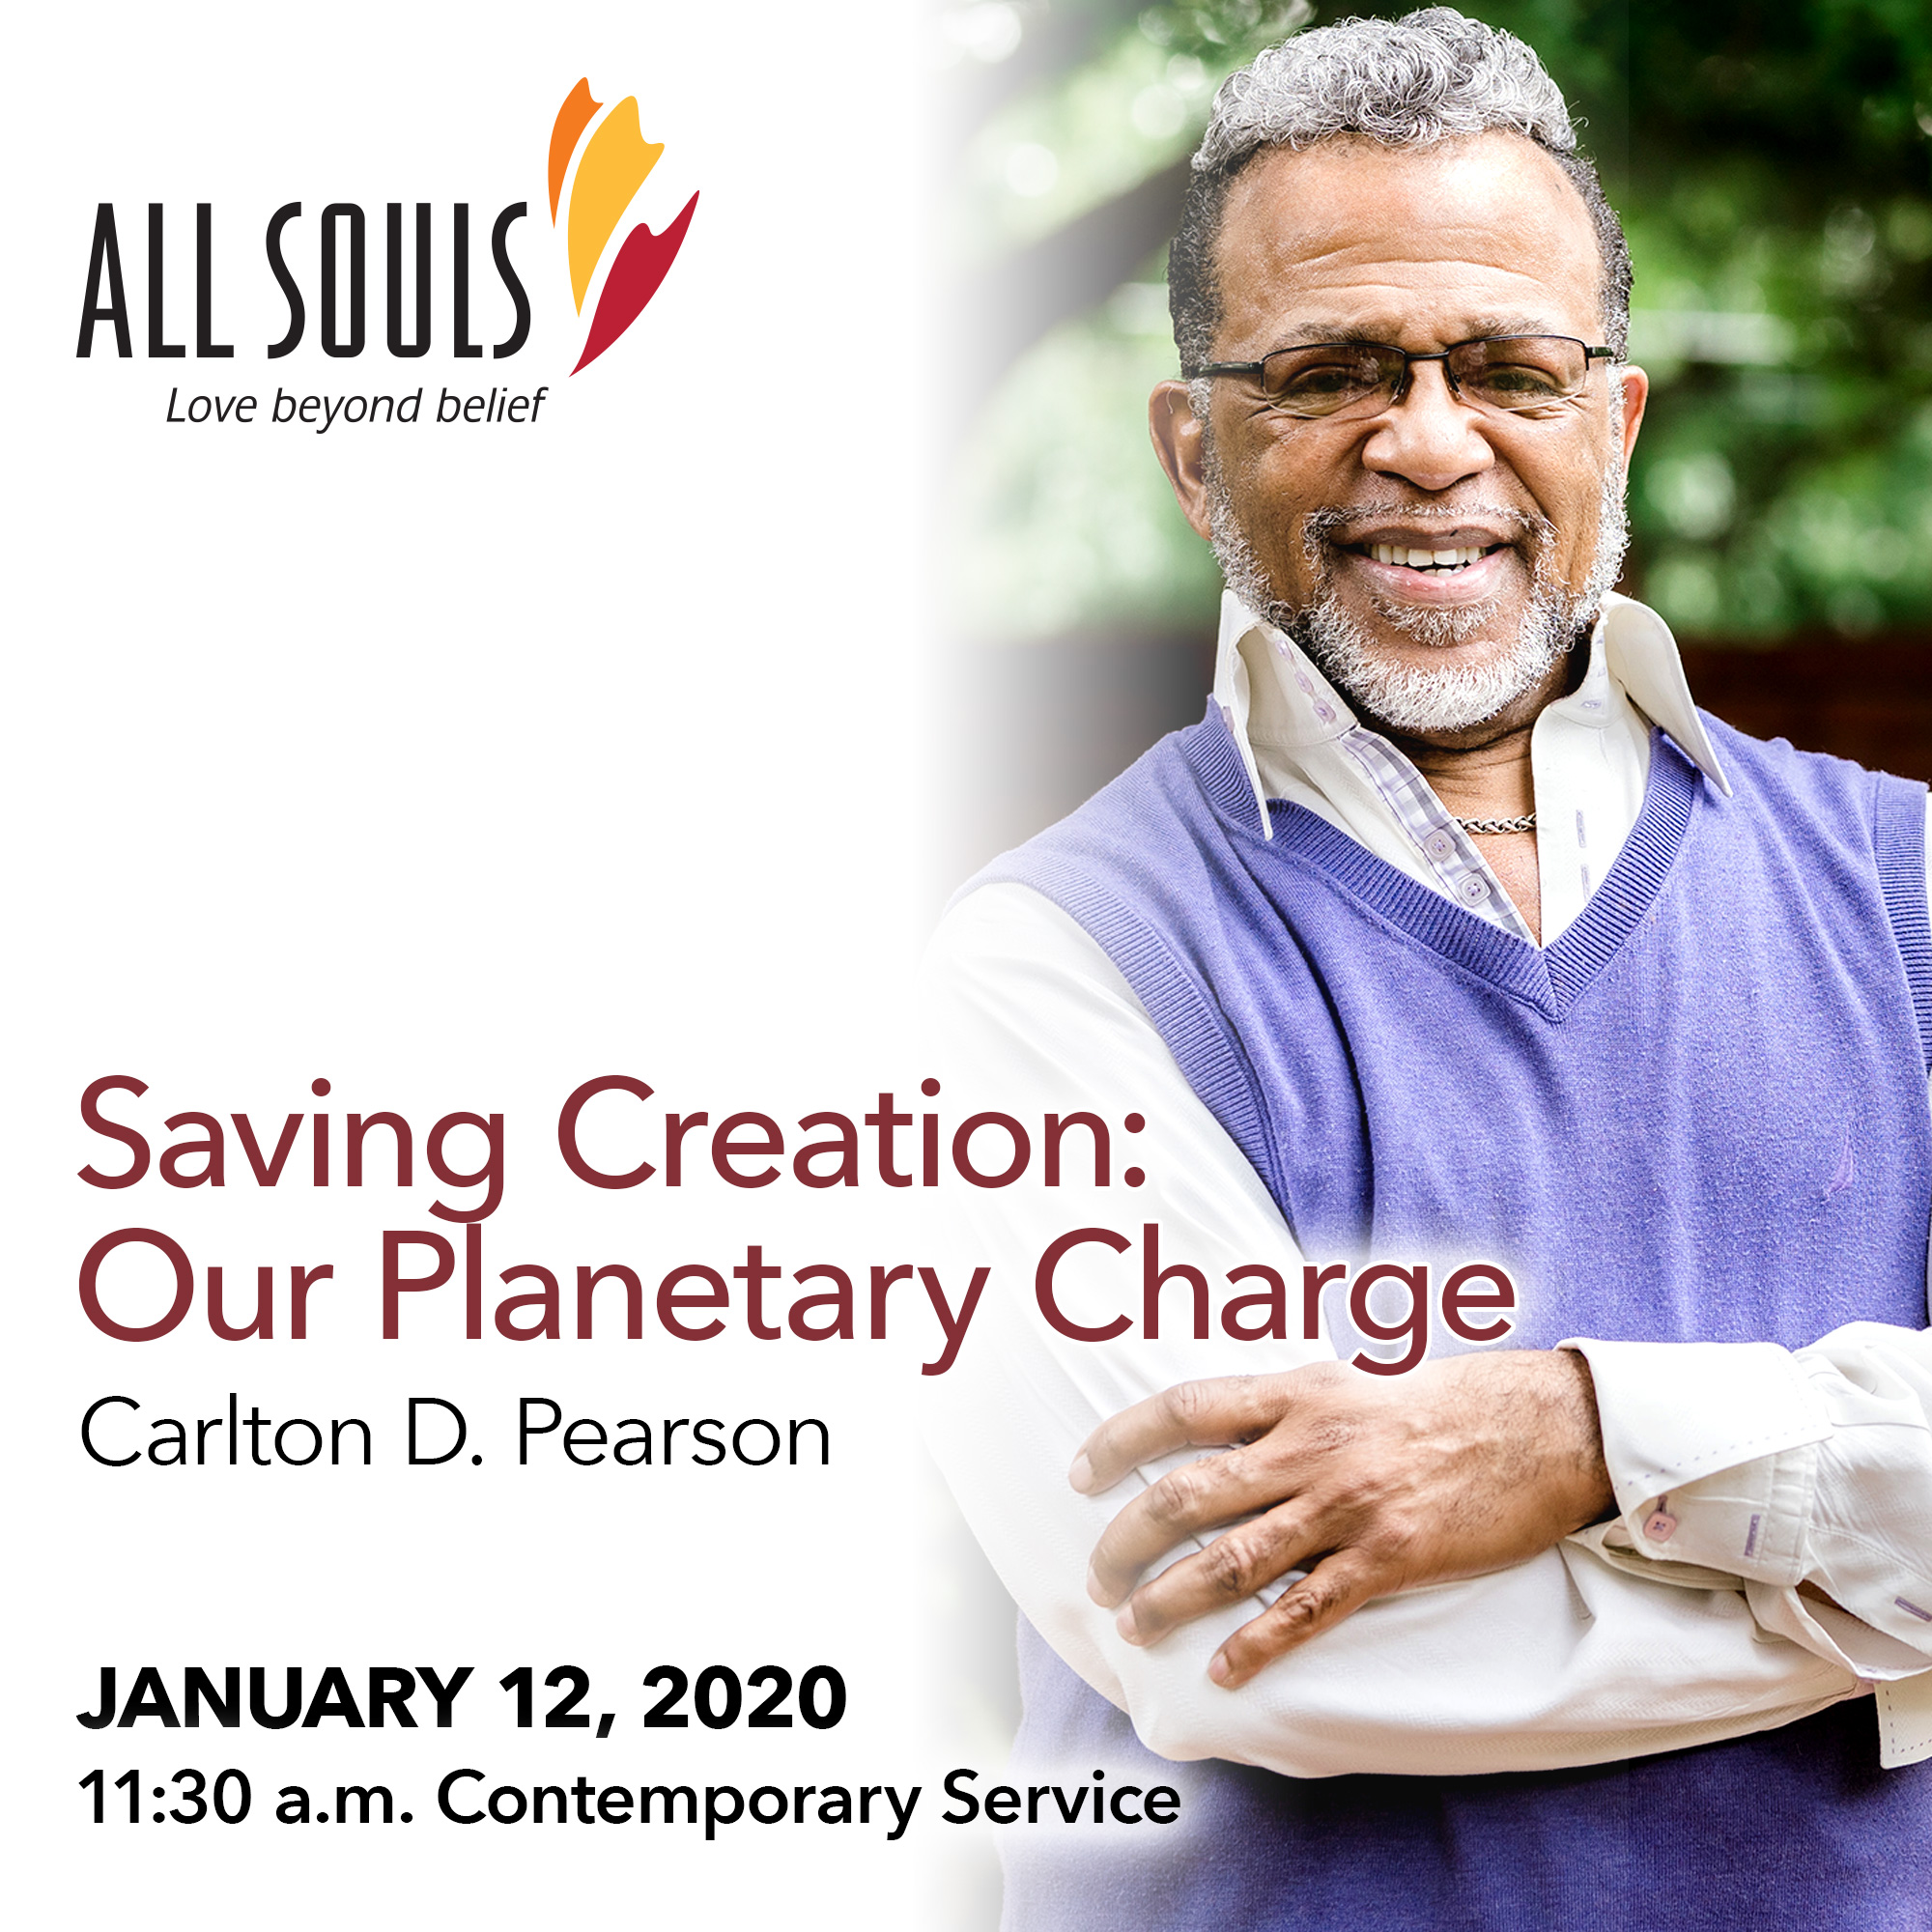 'SAVING CREATION: OUR PLANETARY CHARGE' - A sermon by Carlton D. Pearson (Contemporary Service) show art